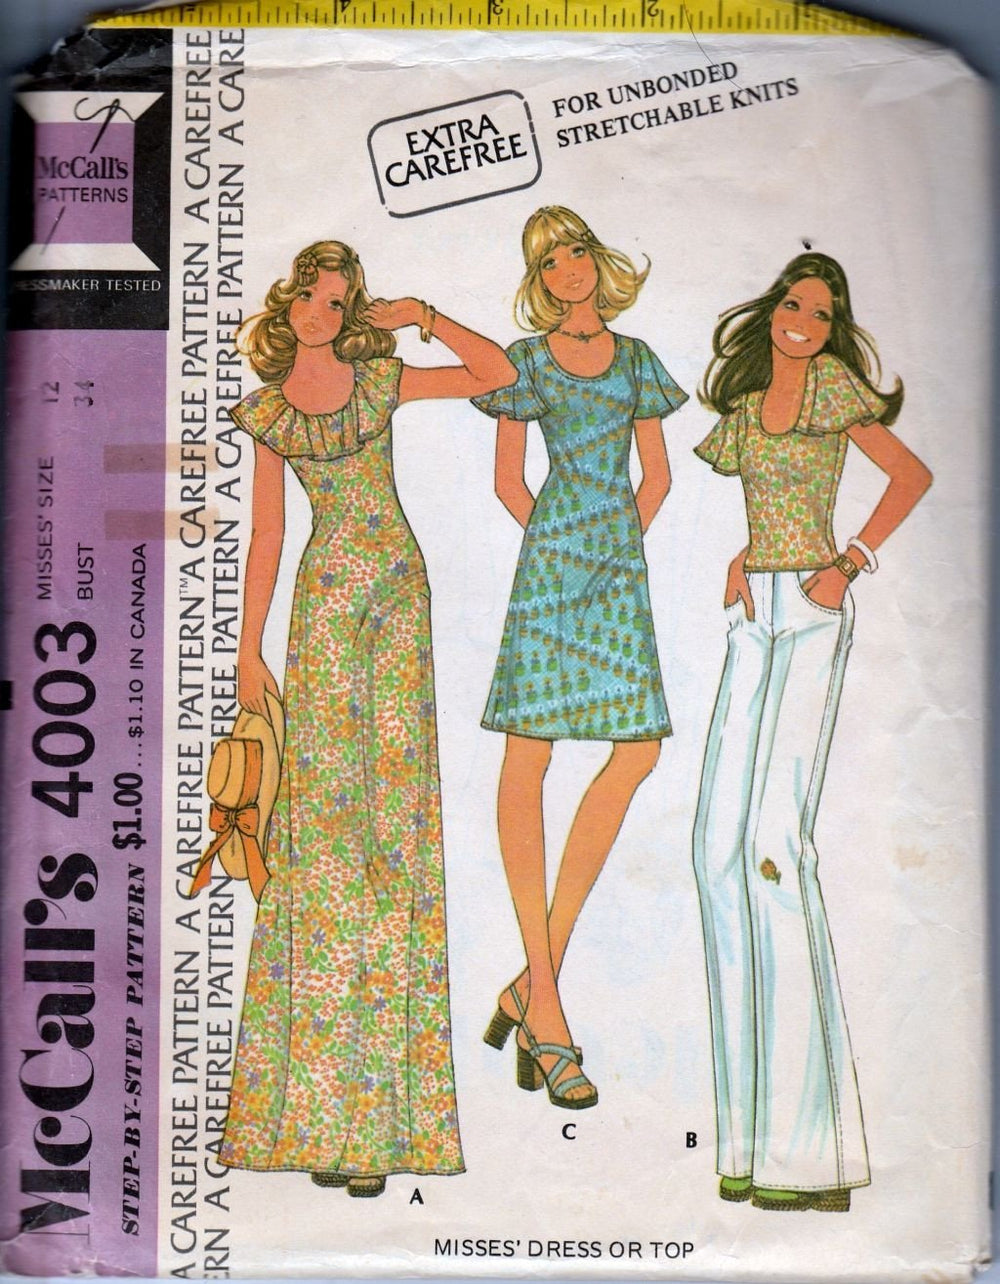 McCall's 4003 Vintage 1970's Sewing Pattern Ladies Knit Hippie Dress Shirt - VintageStitching - Vintage Sewing Patterns